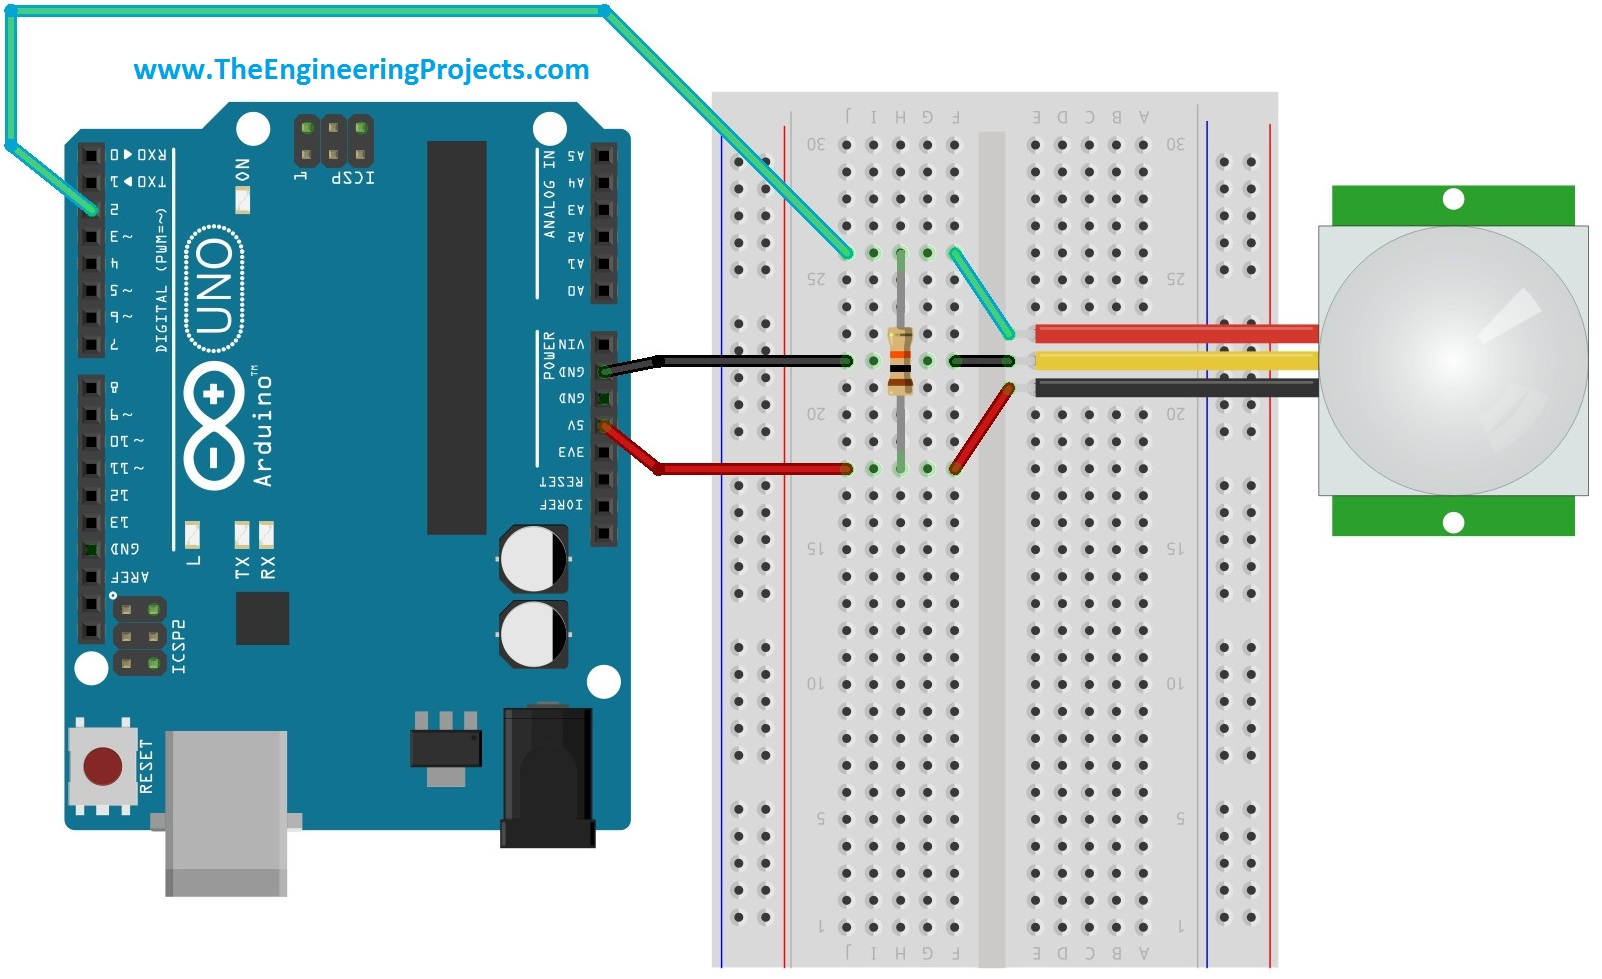 interfacing pir sensor with arduino the engineering projects. Black Bedroom Furniture Sets. Home Design Ideas